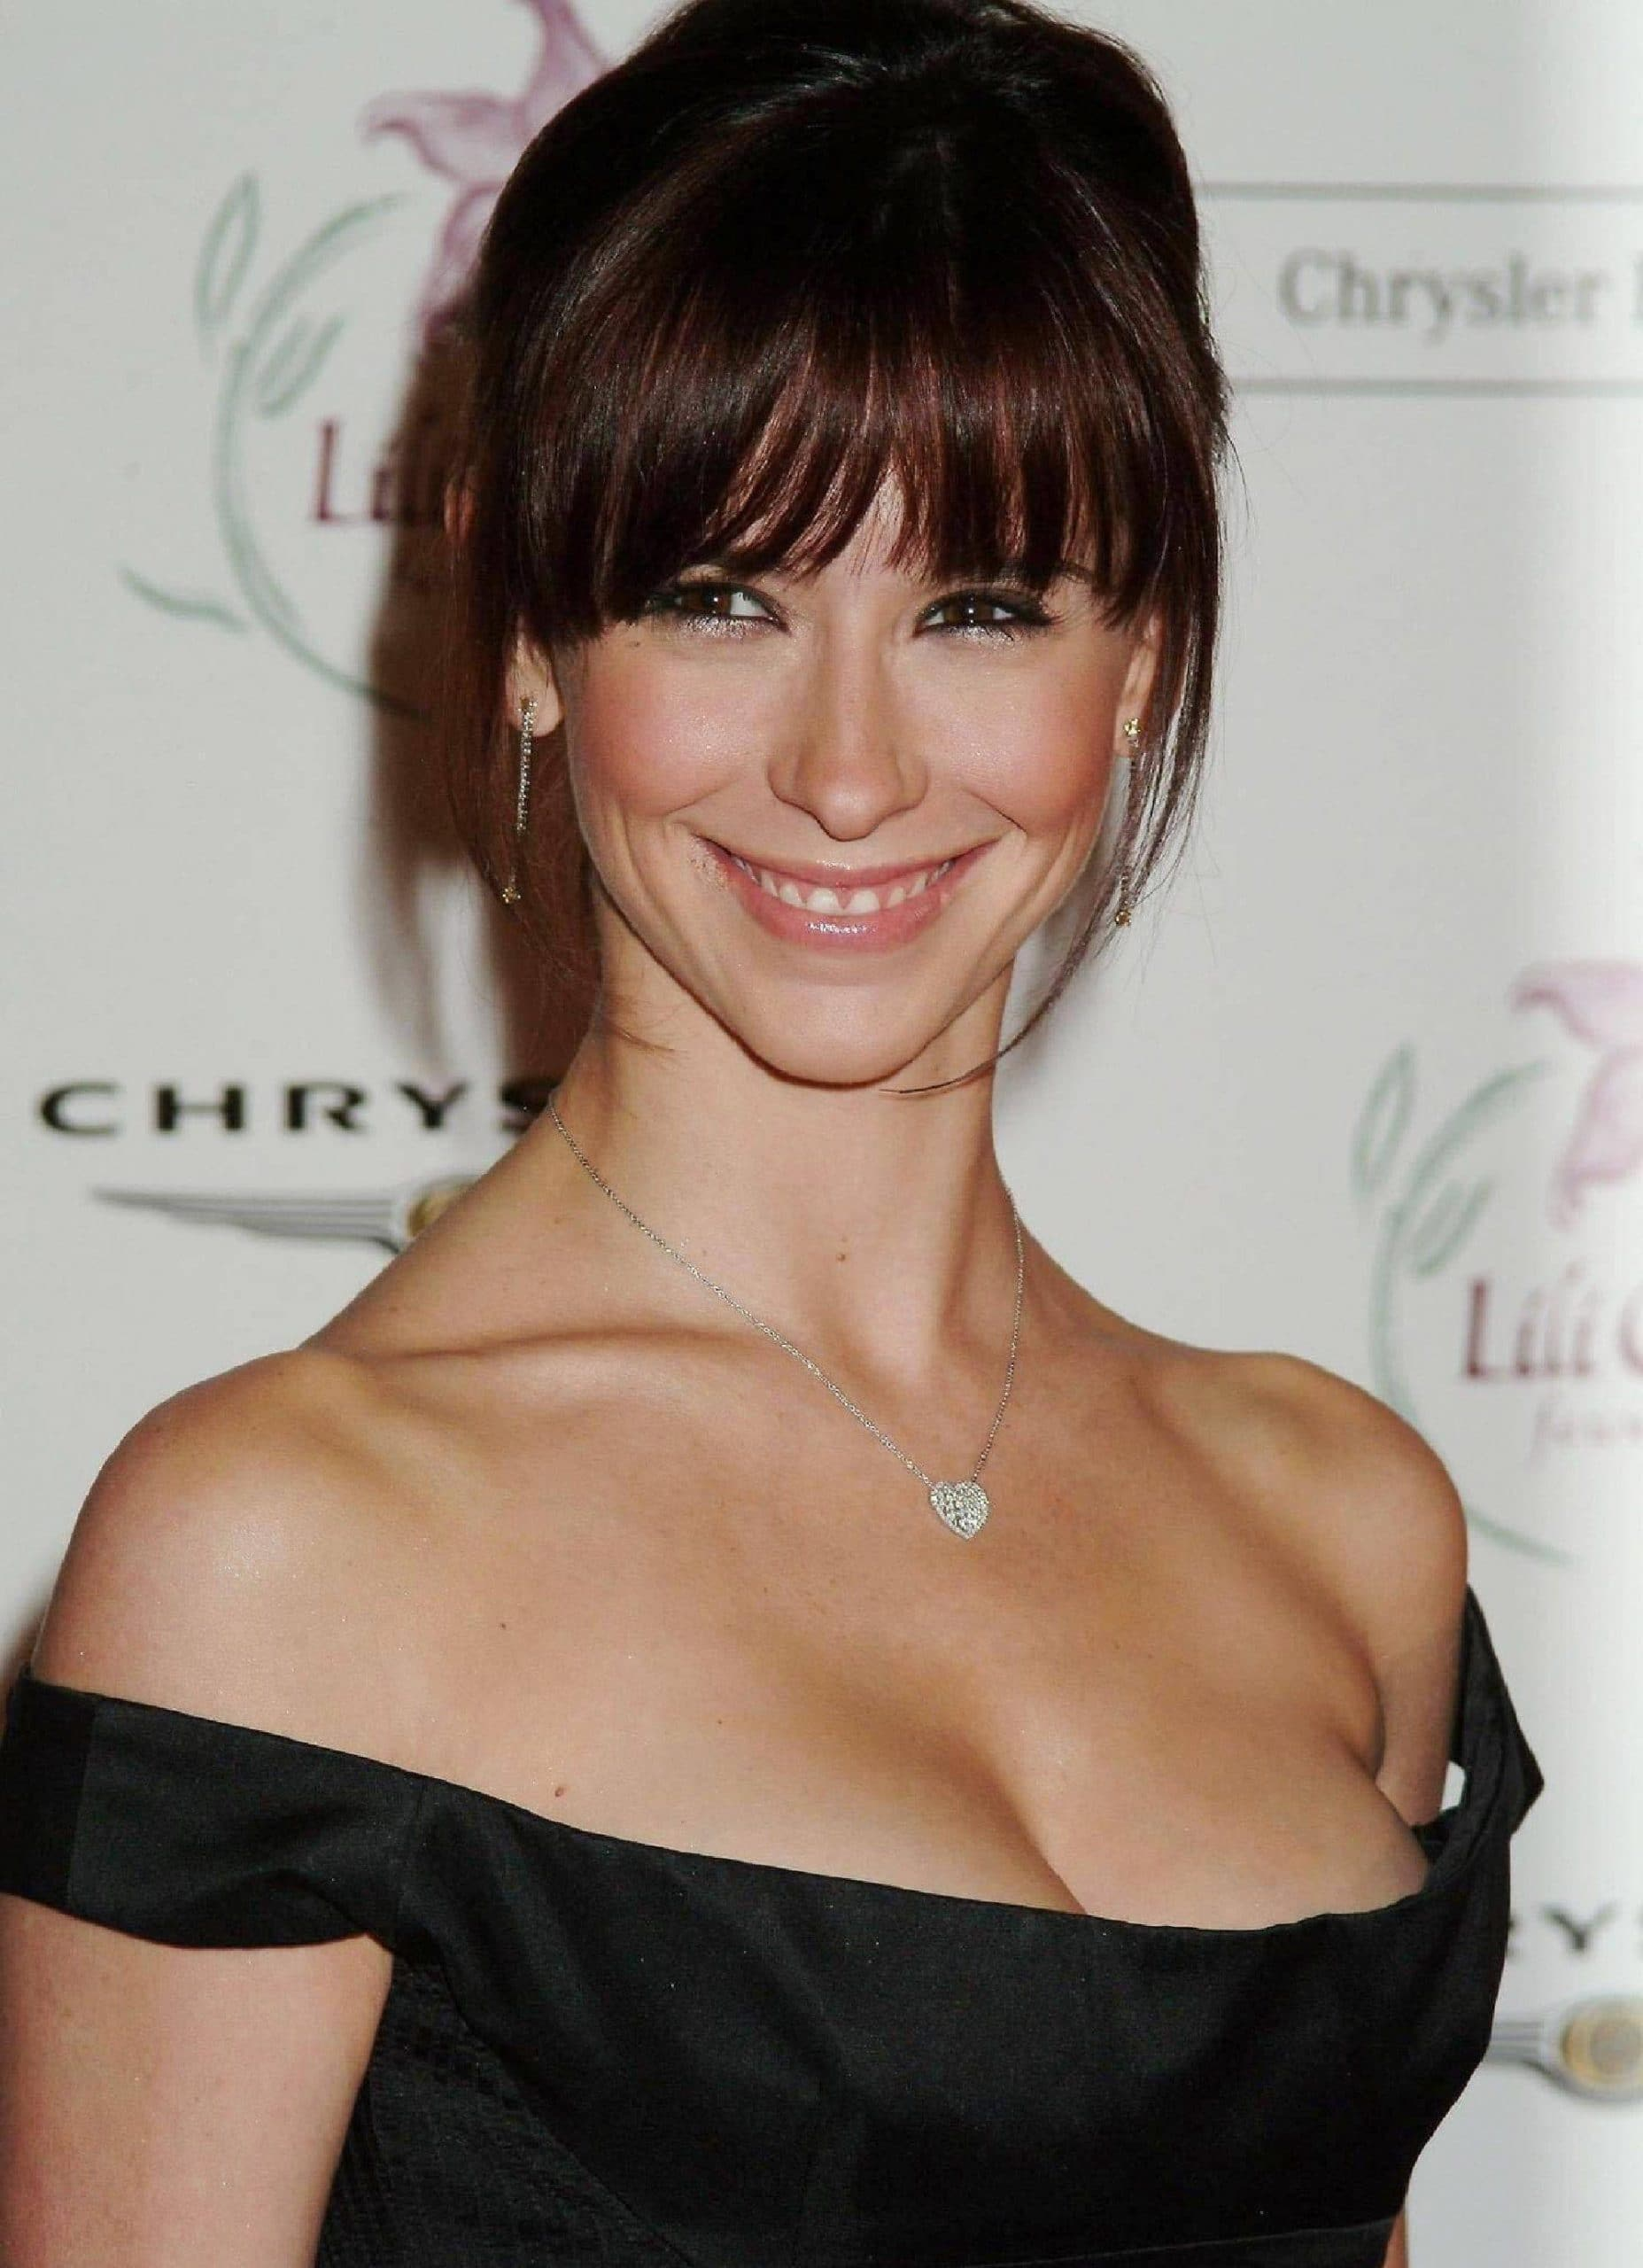 Jennifer Love Hewitt would like to get her 36C cup size breasts insured for $5 million